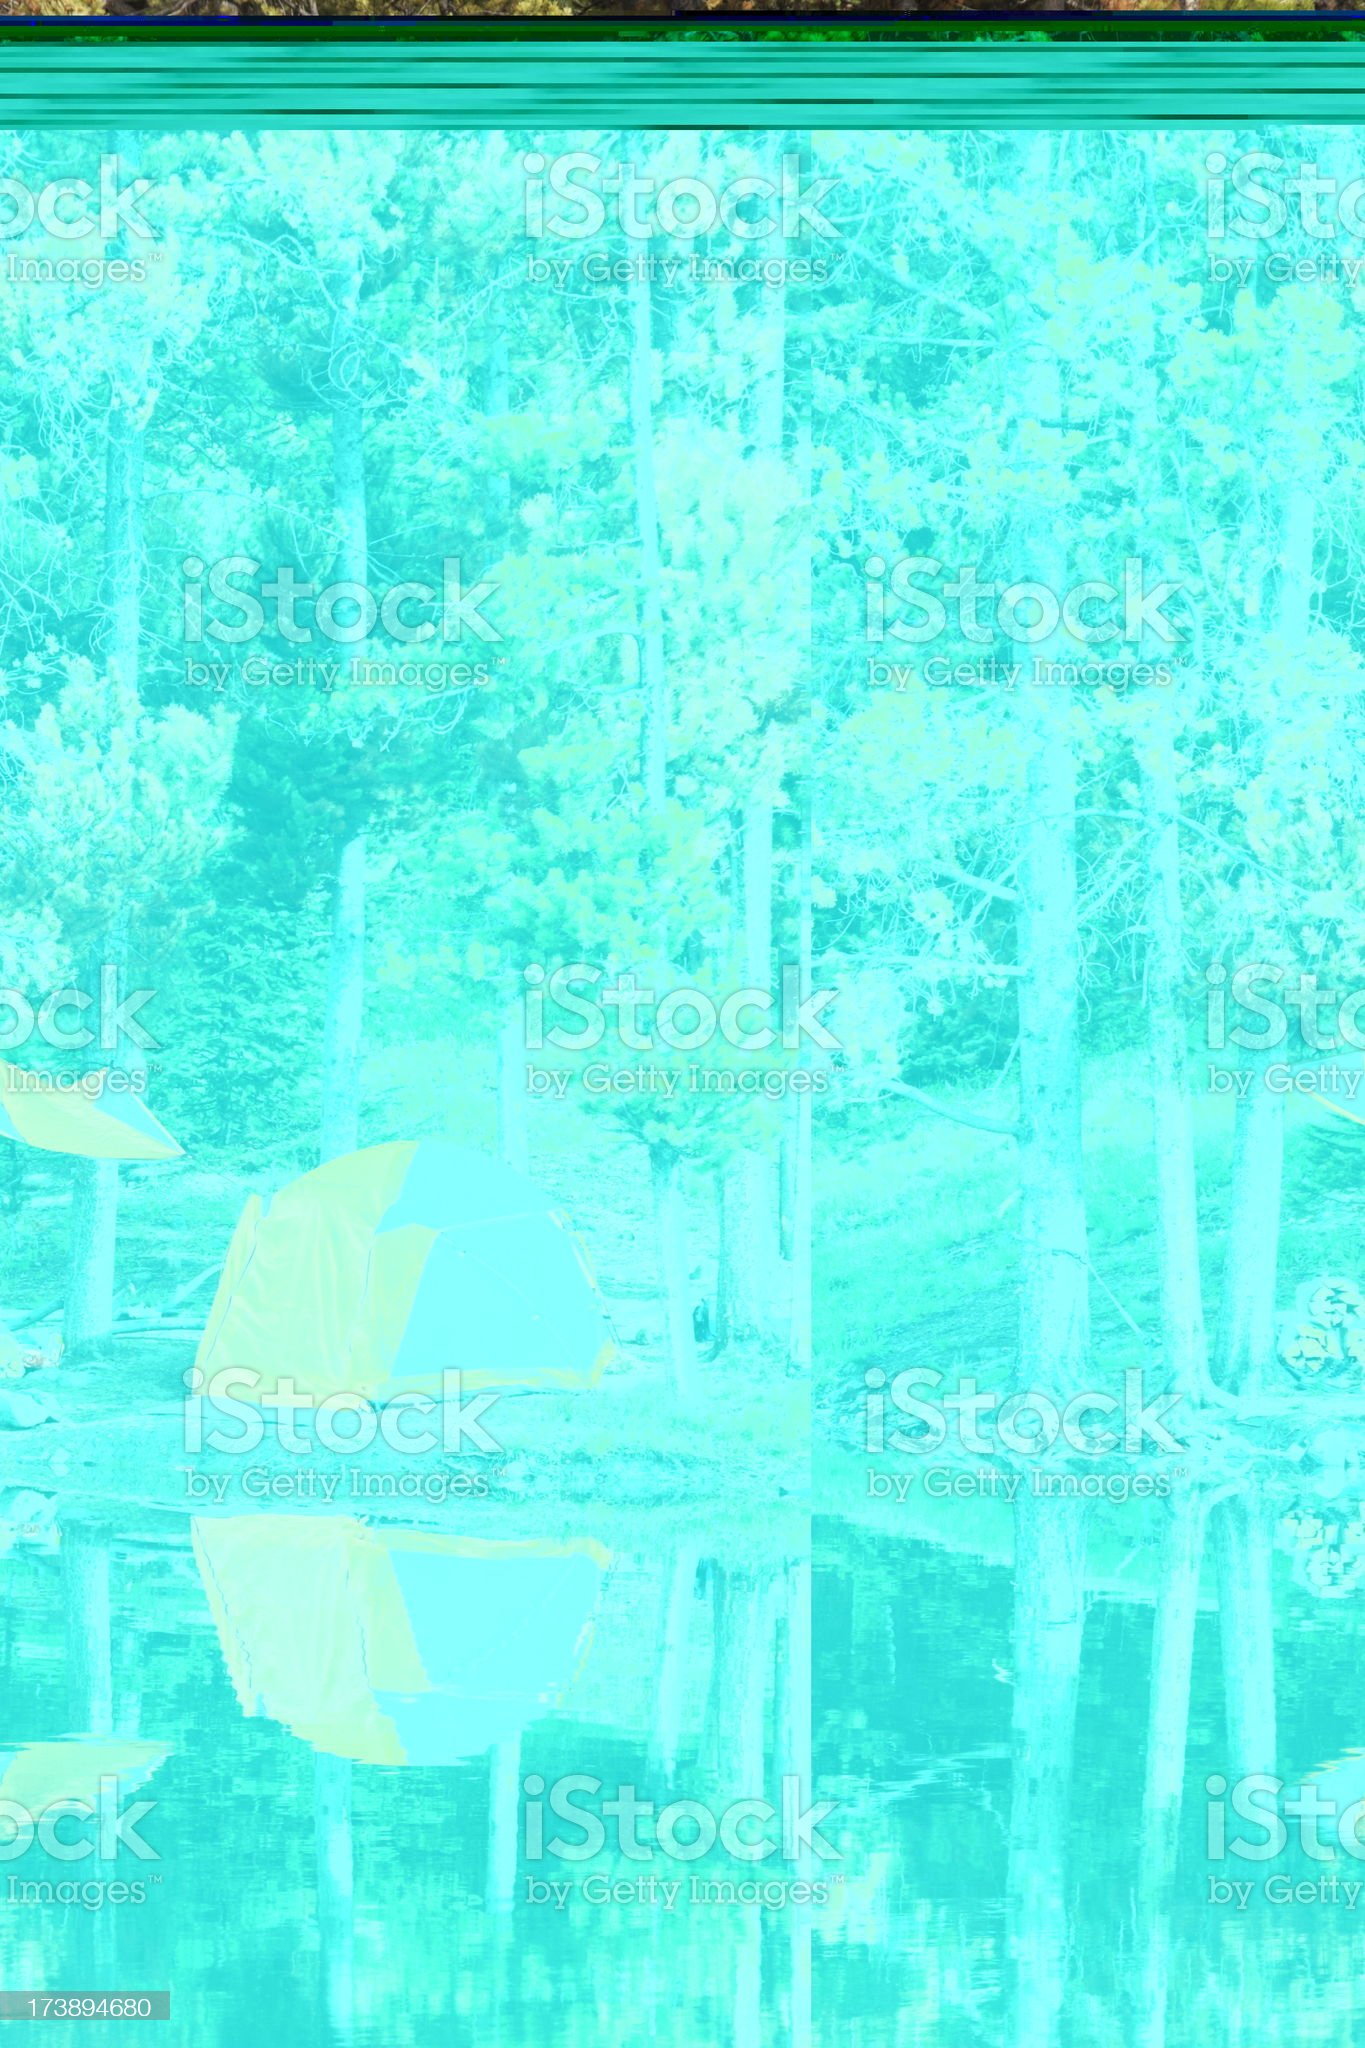 Tent Camp Lake Reflection Tranquil Forest royalty-free stock photo